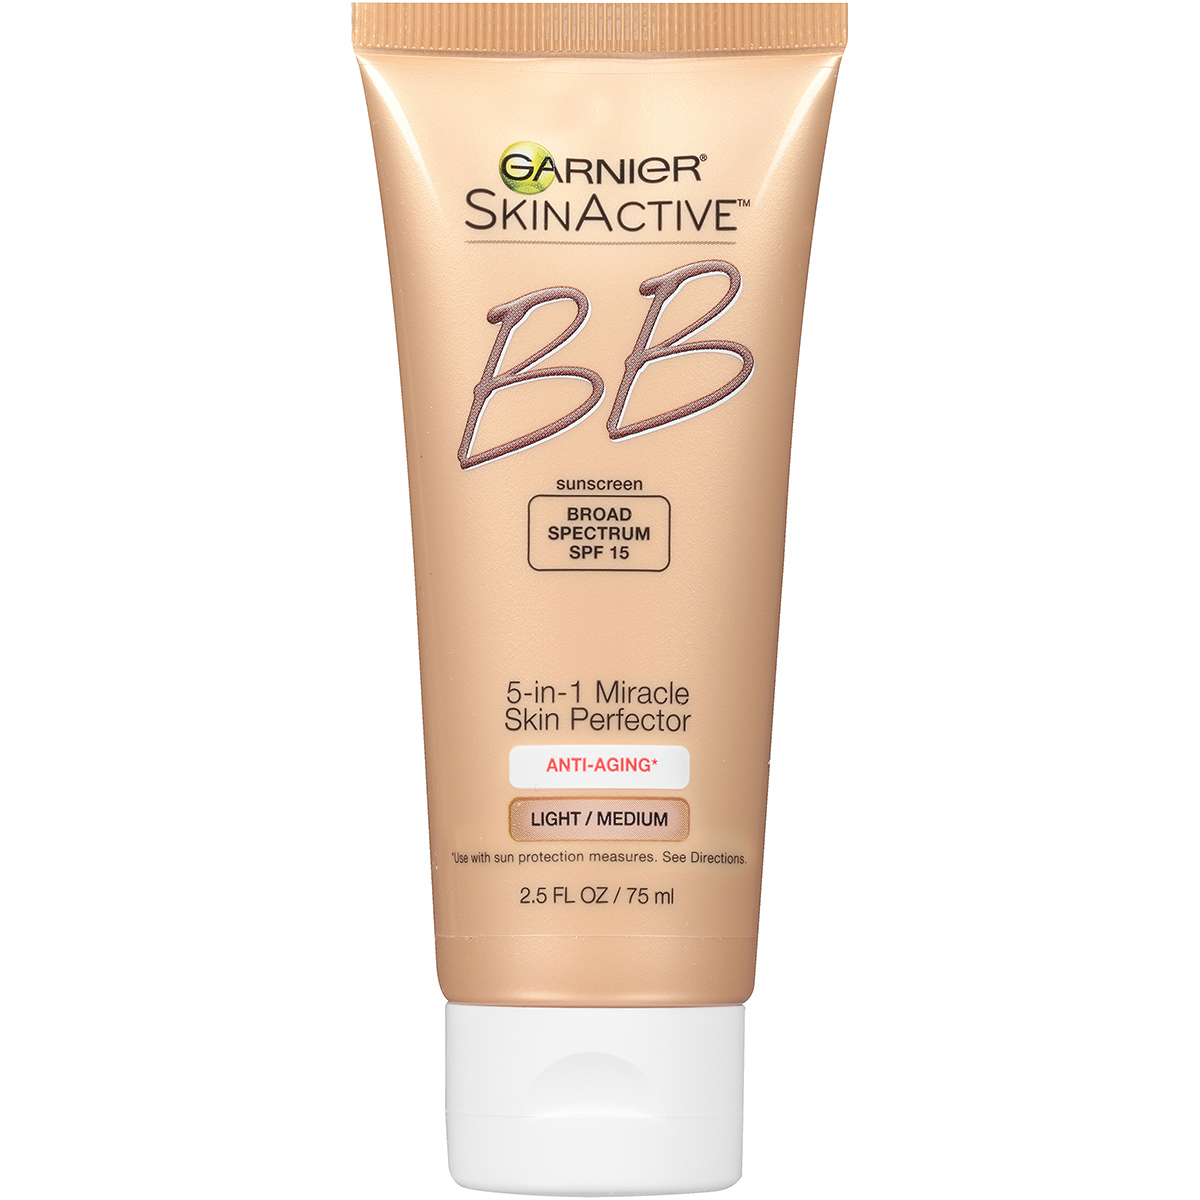 BB Cream or CC Cream—Which Is Right for You?